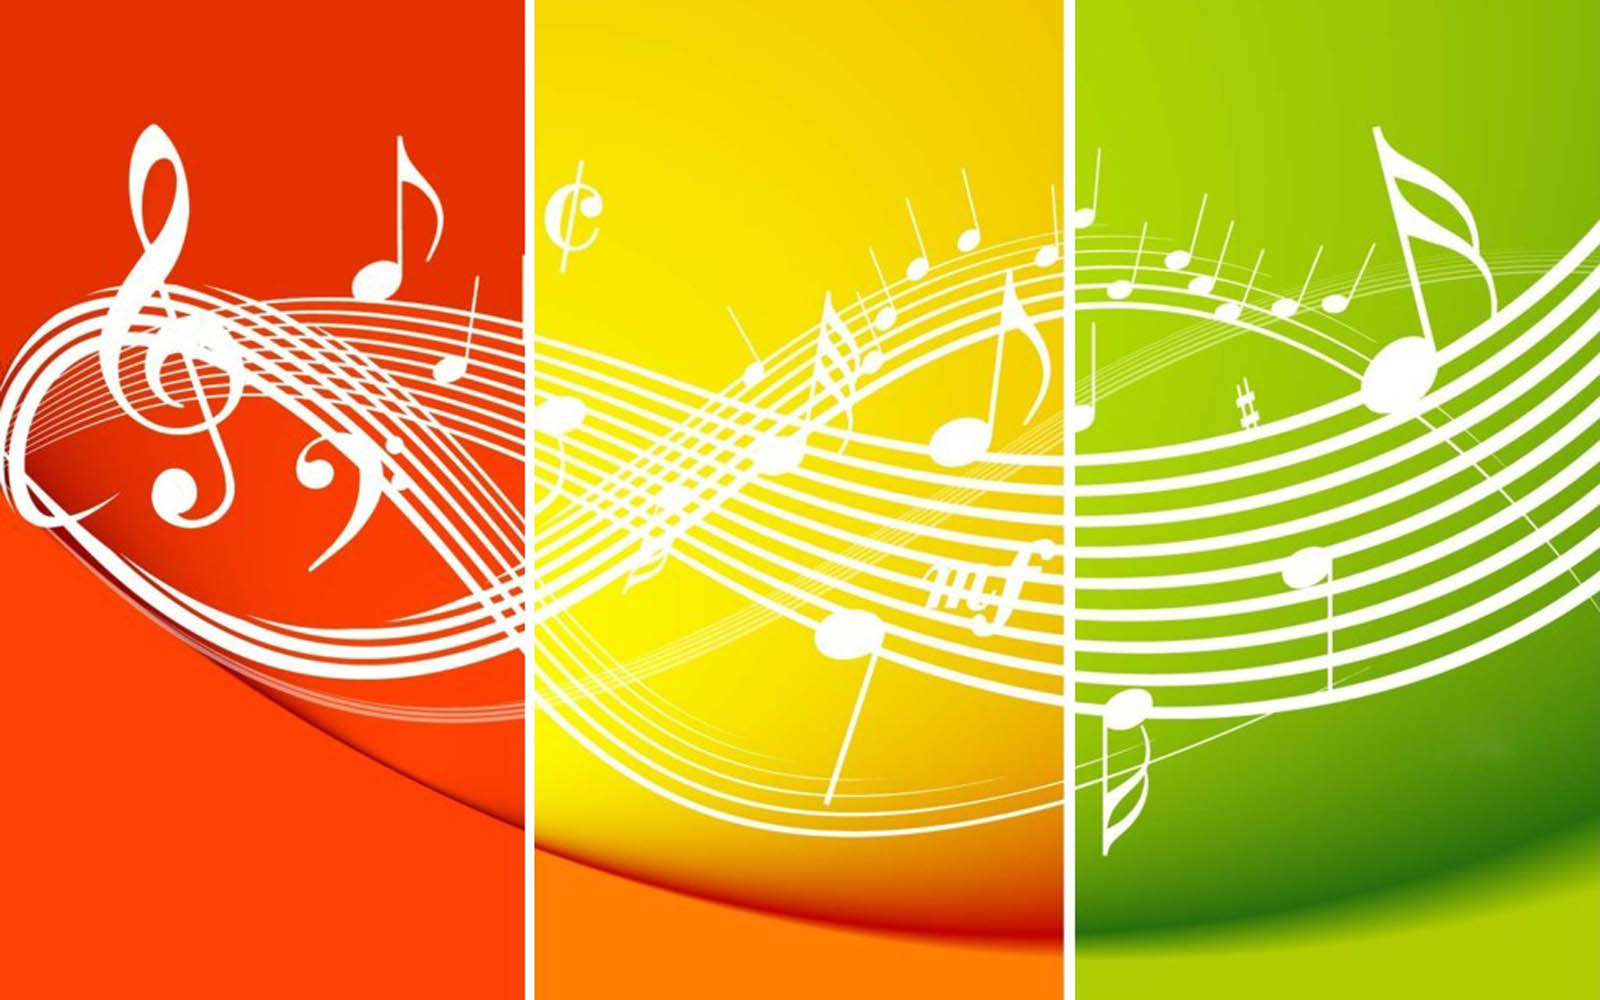 wallpapers abstract music wallpapers